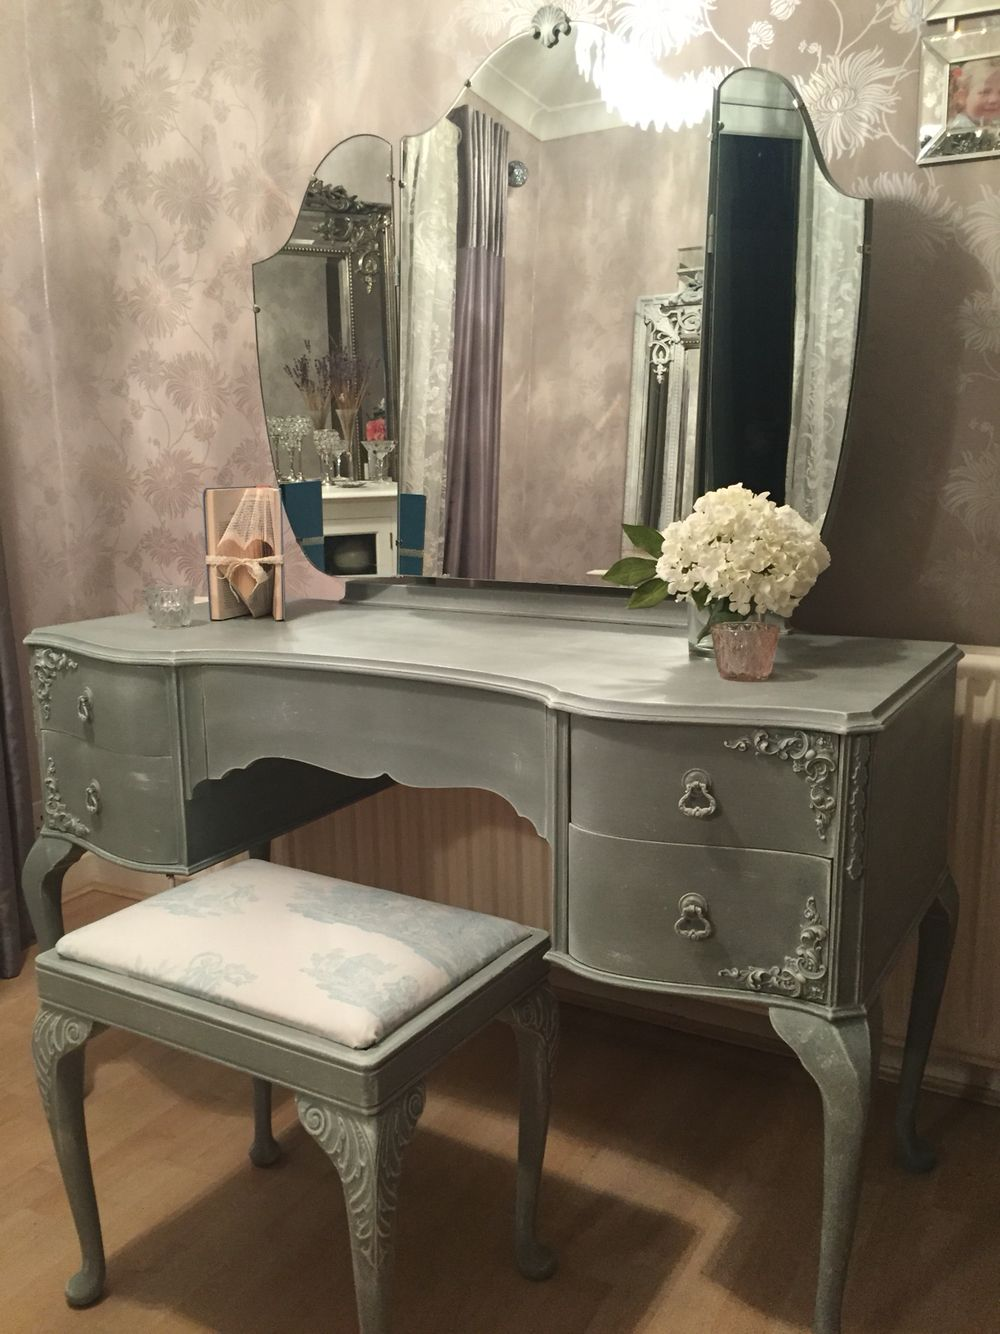 Dressing Table In Annie Sloan Duck Egg And Old White Appliques From Chic Mouldings Anniesloan Notju Shabby Chic Dresser Queen Anne Furniture Vanity Makeover [ 1334 x 1000 Pixel ]